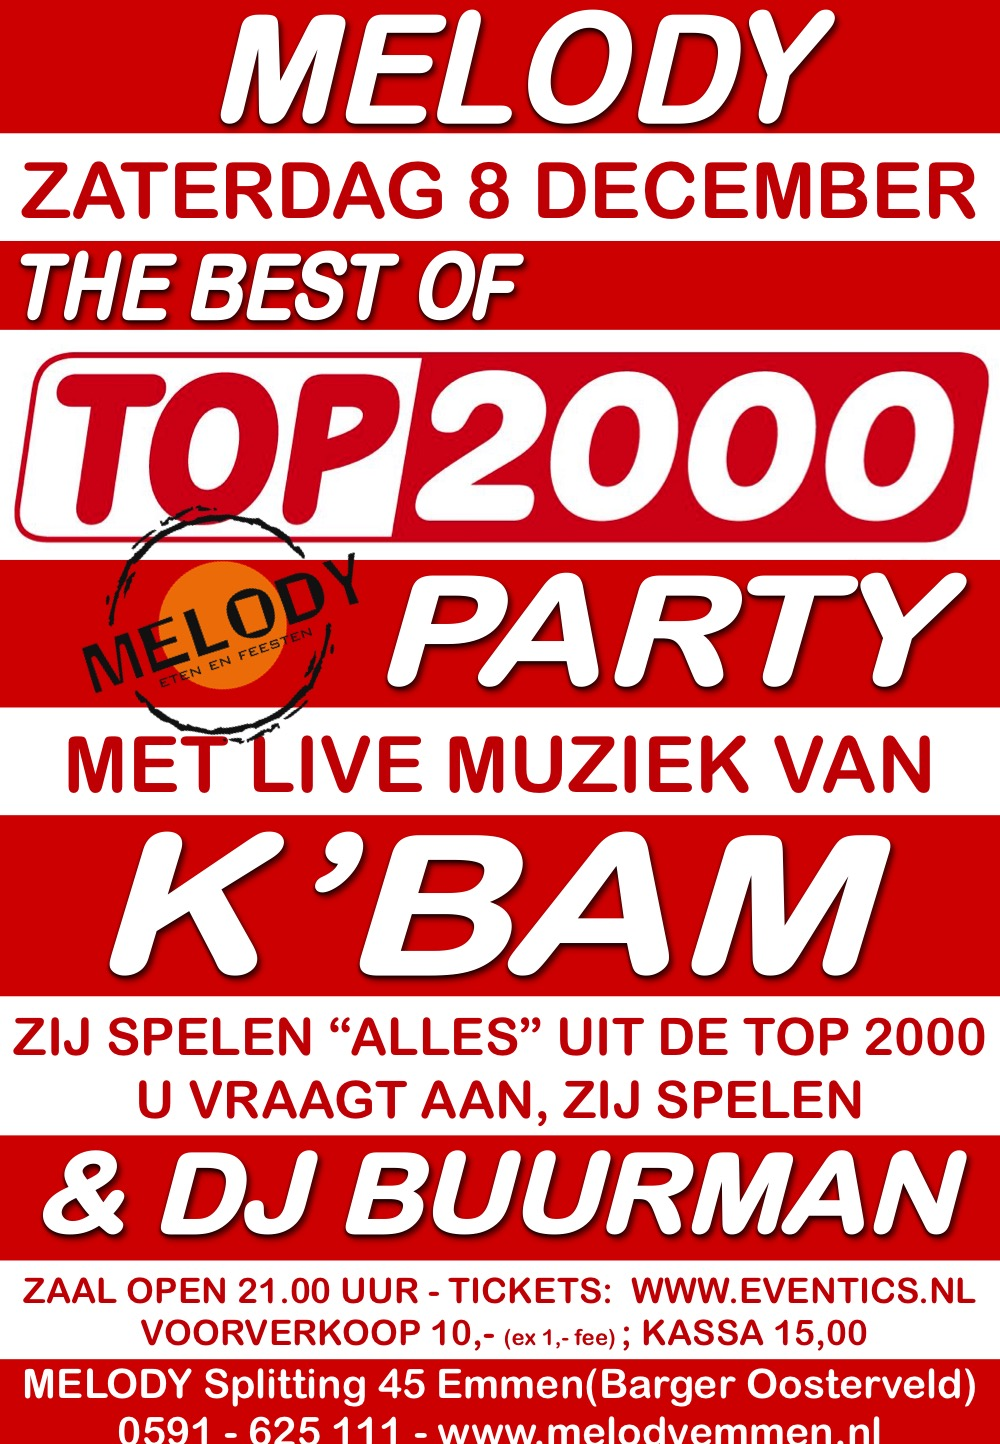 TOP 2000 PARTY